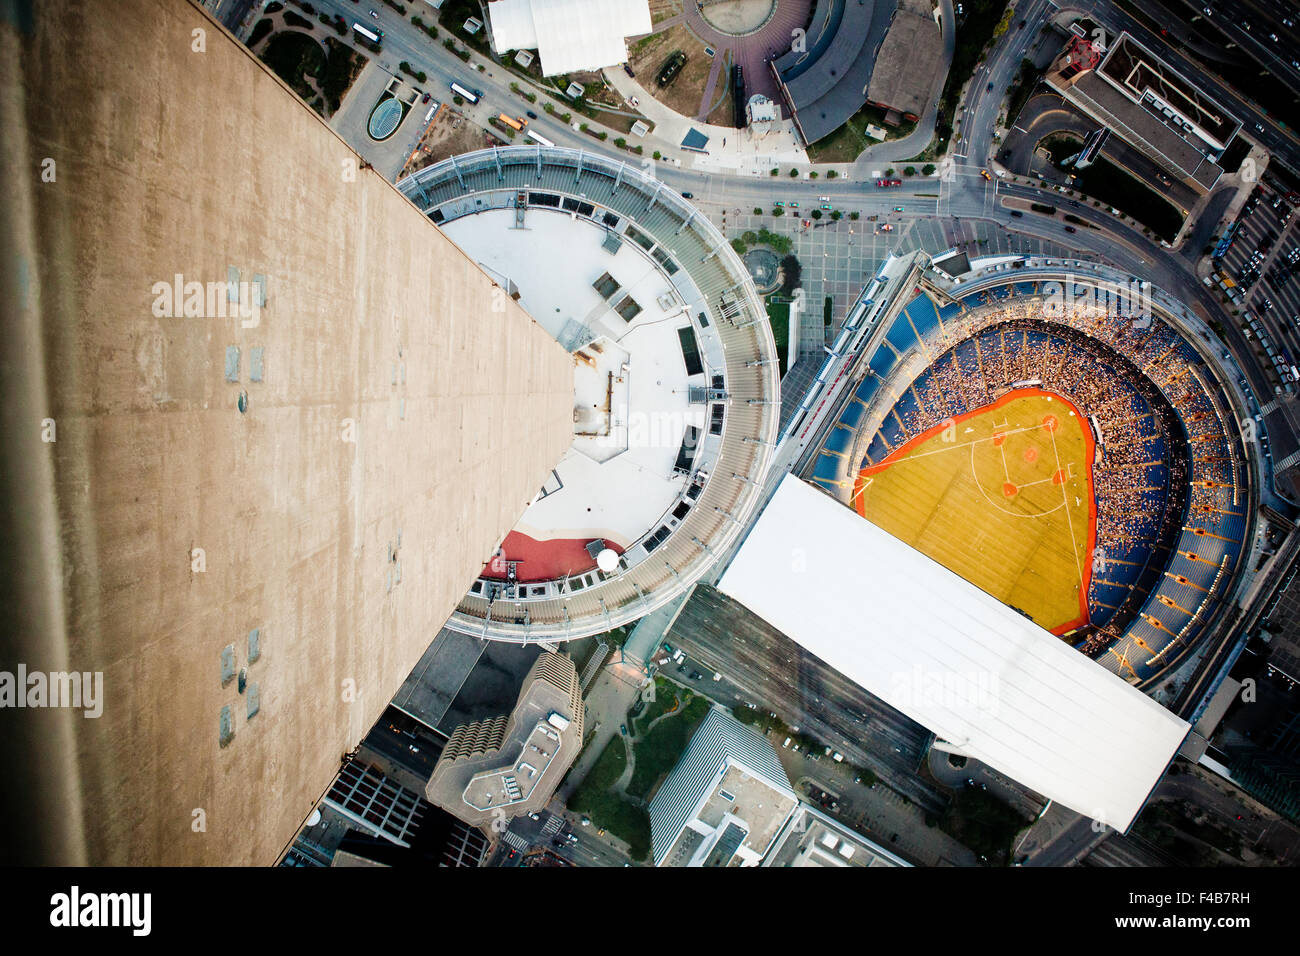 Bird's eye view of the Blue Jays baseball team in Rogers Centre from CN Tower Toronto Canada - Stock Image